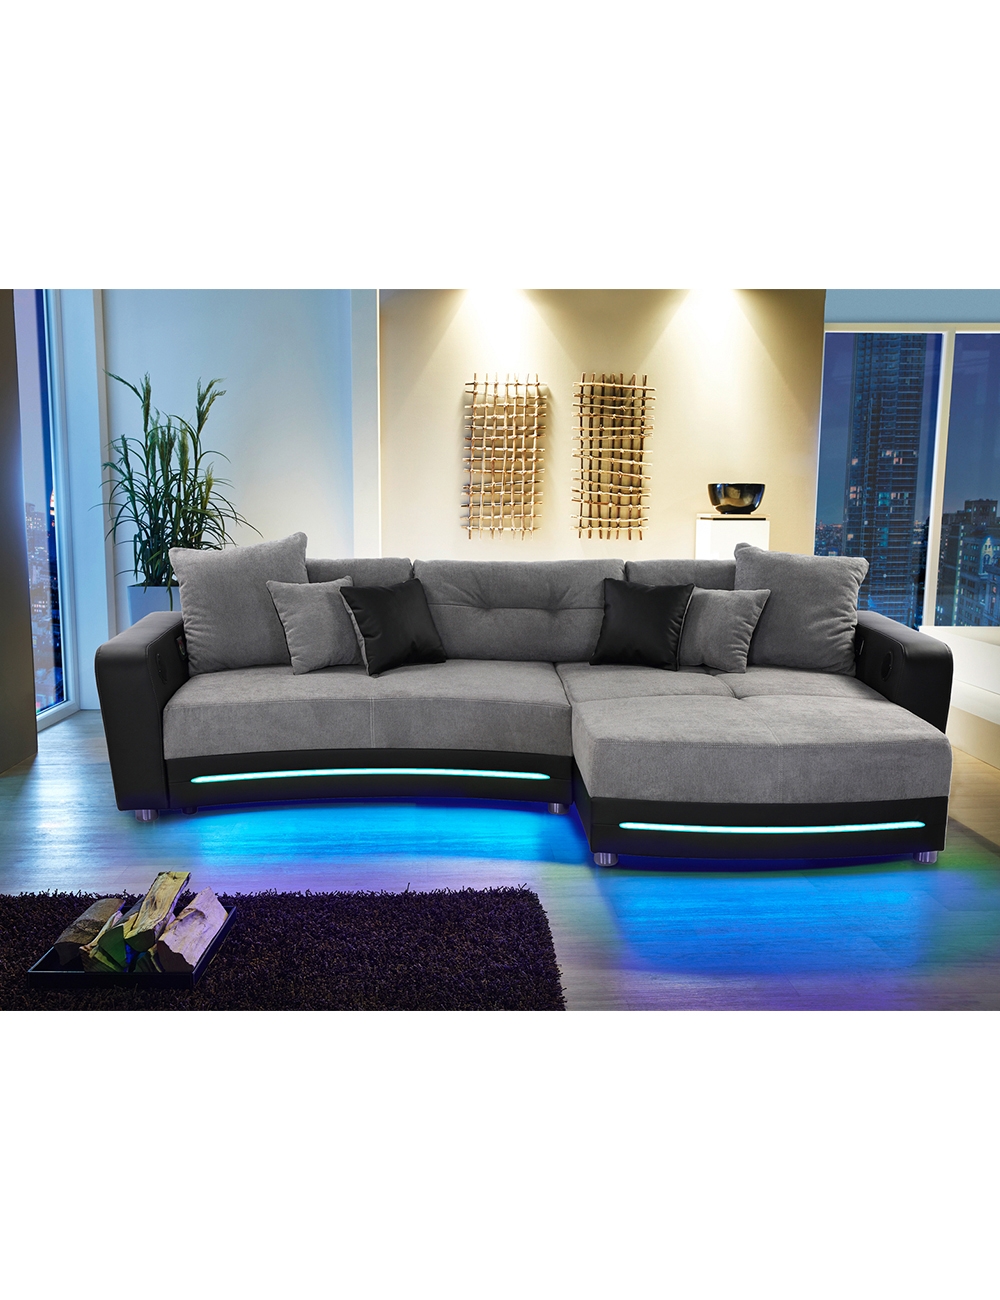 ecksofa party mit beleuchtungsleiste und soundsystem schwarz grau. Black Bedroom Furniture Sets. Home Design Ideas